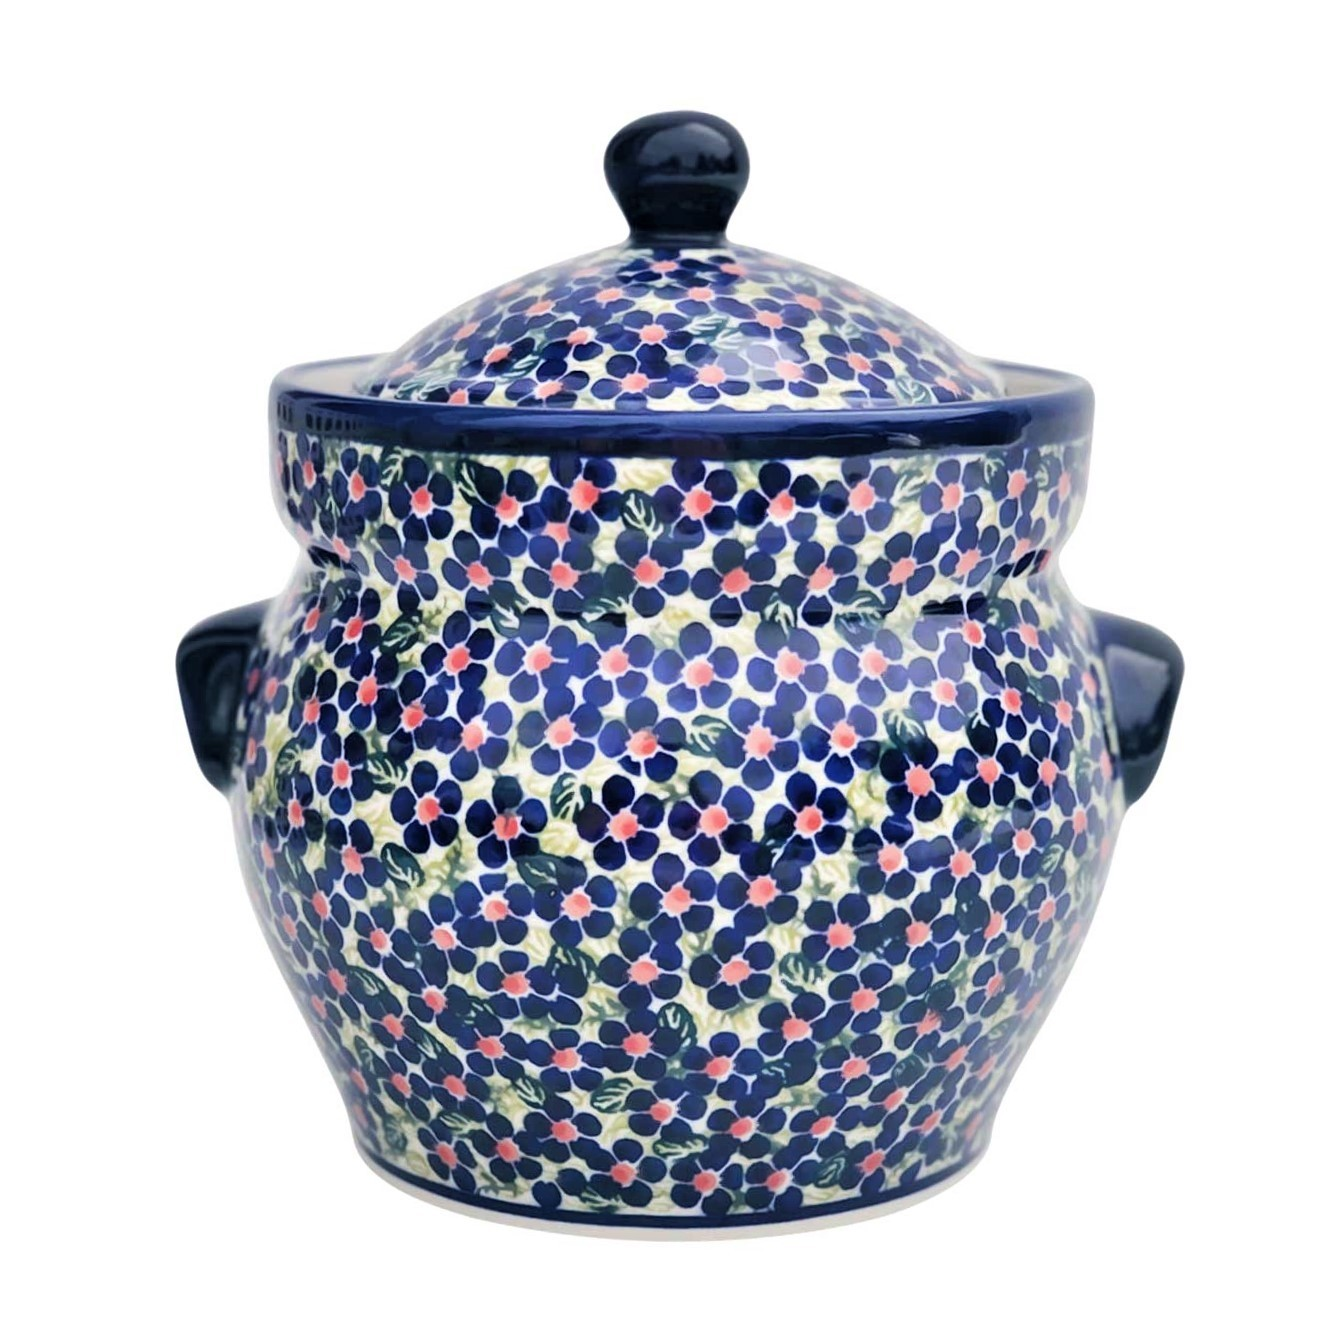 Pottery Avenue 7.6-cup Stoneware Canister - 1125/DU206 Friendship